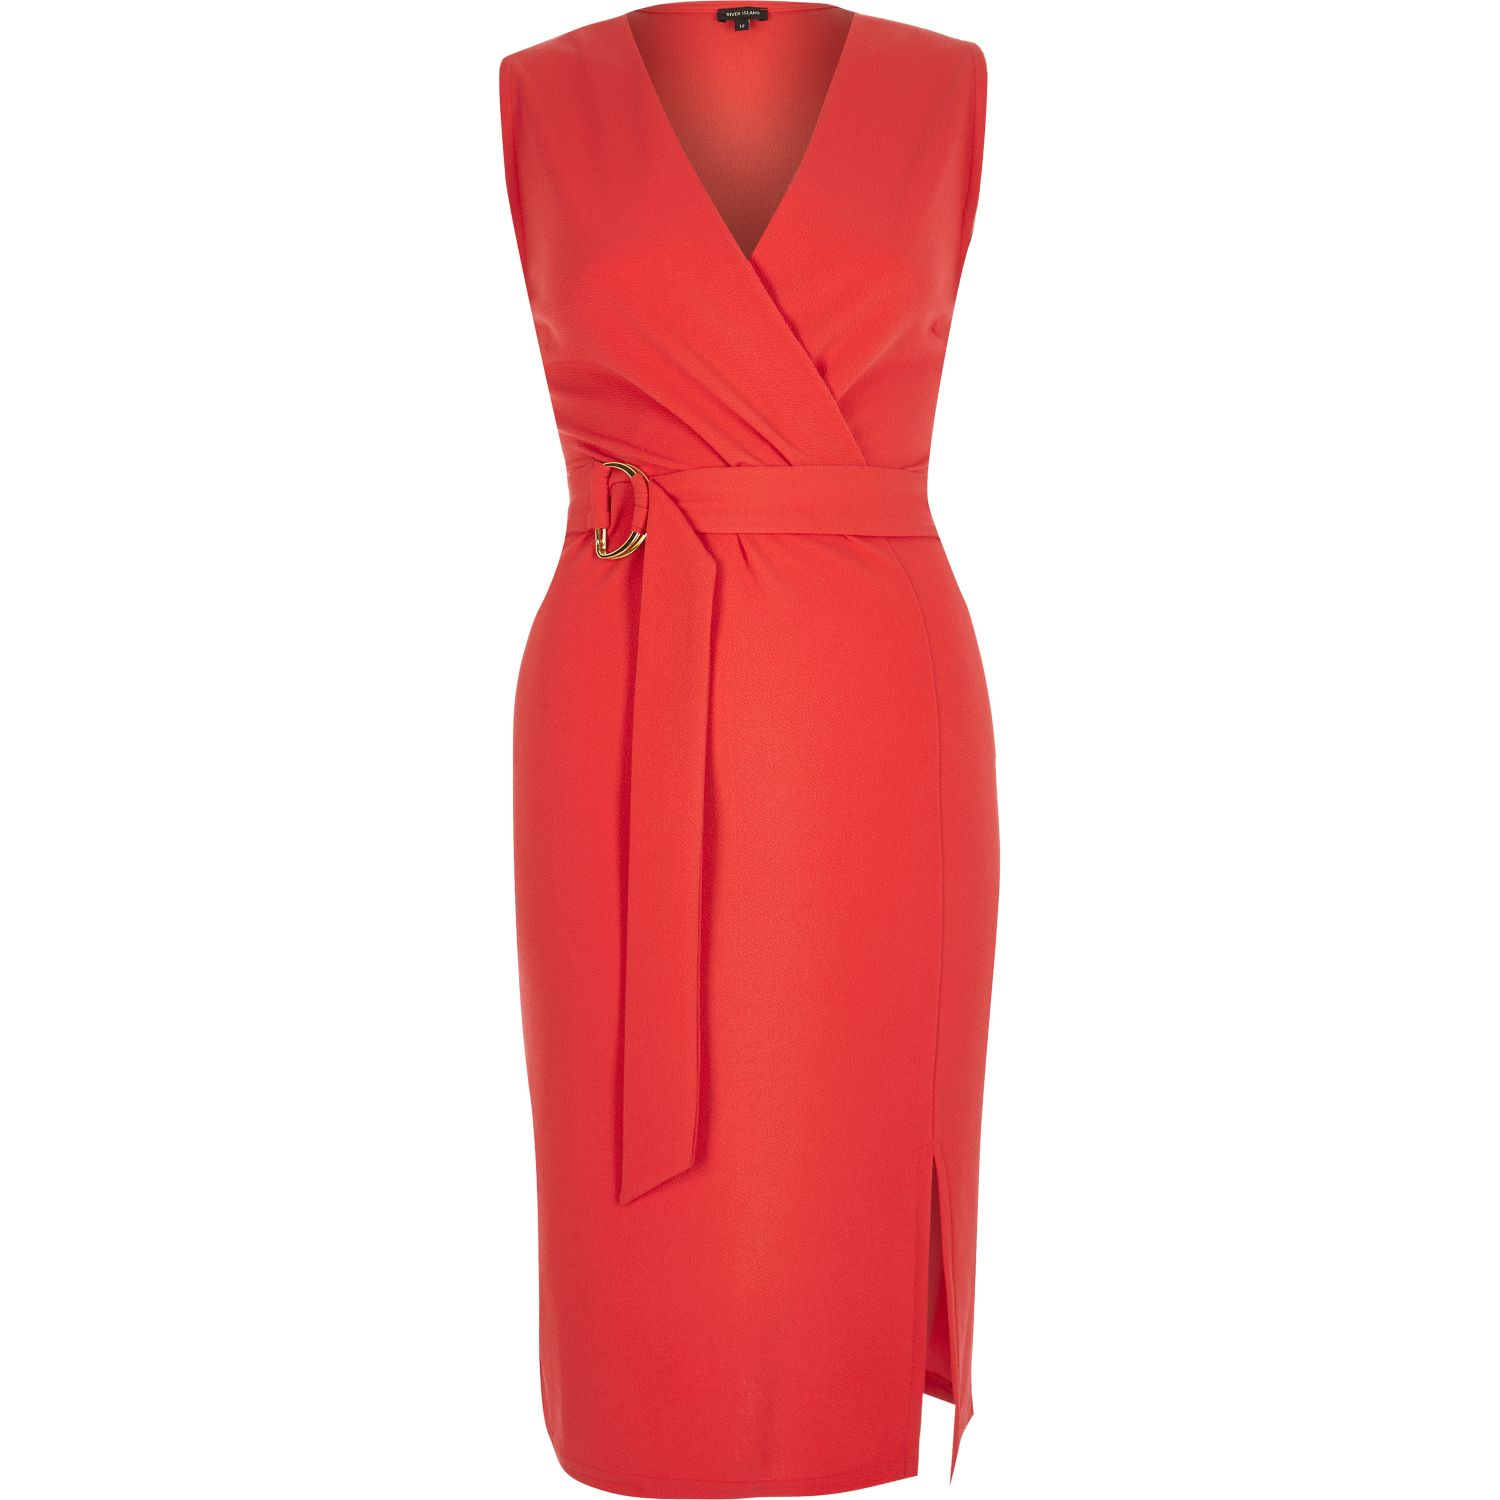 1da96403785 River Island Red D-ring Belted Wrap Dress in Red - Lyst